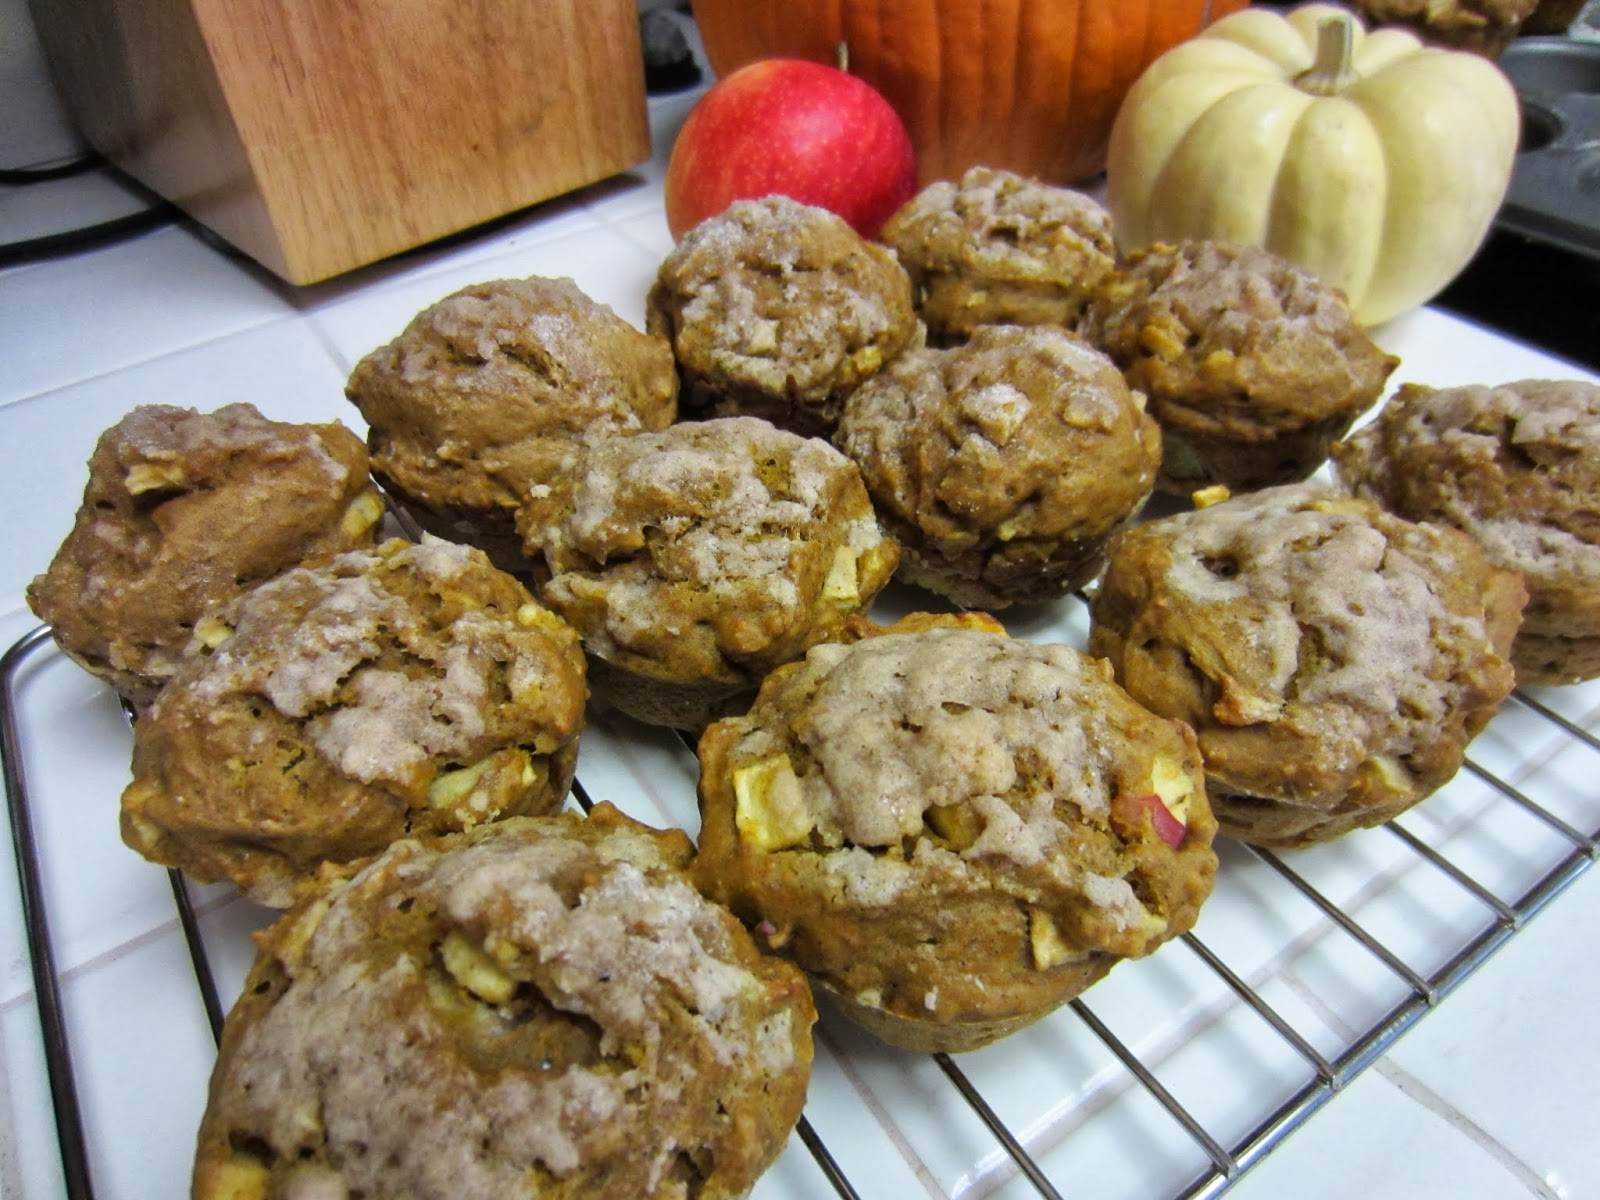 Sisters Do Food and Fitness: Pumpkin Apple Streusel Muffins